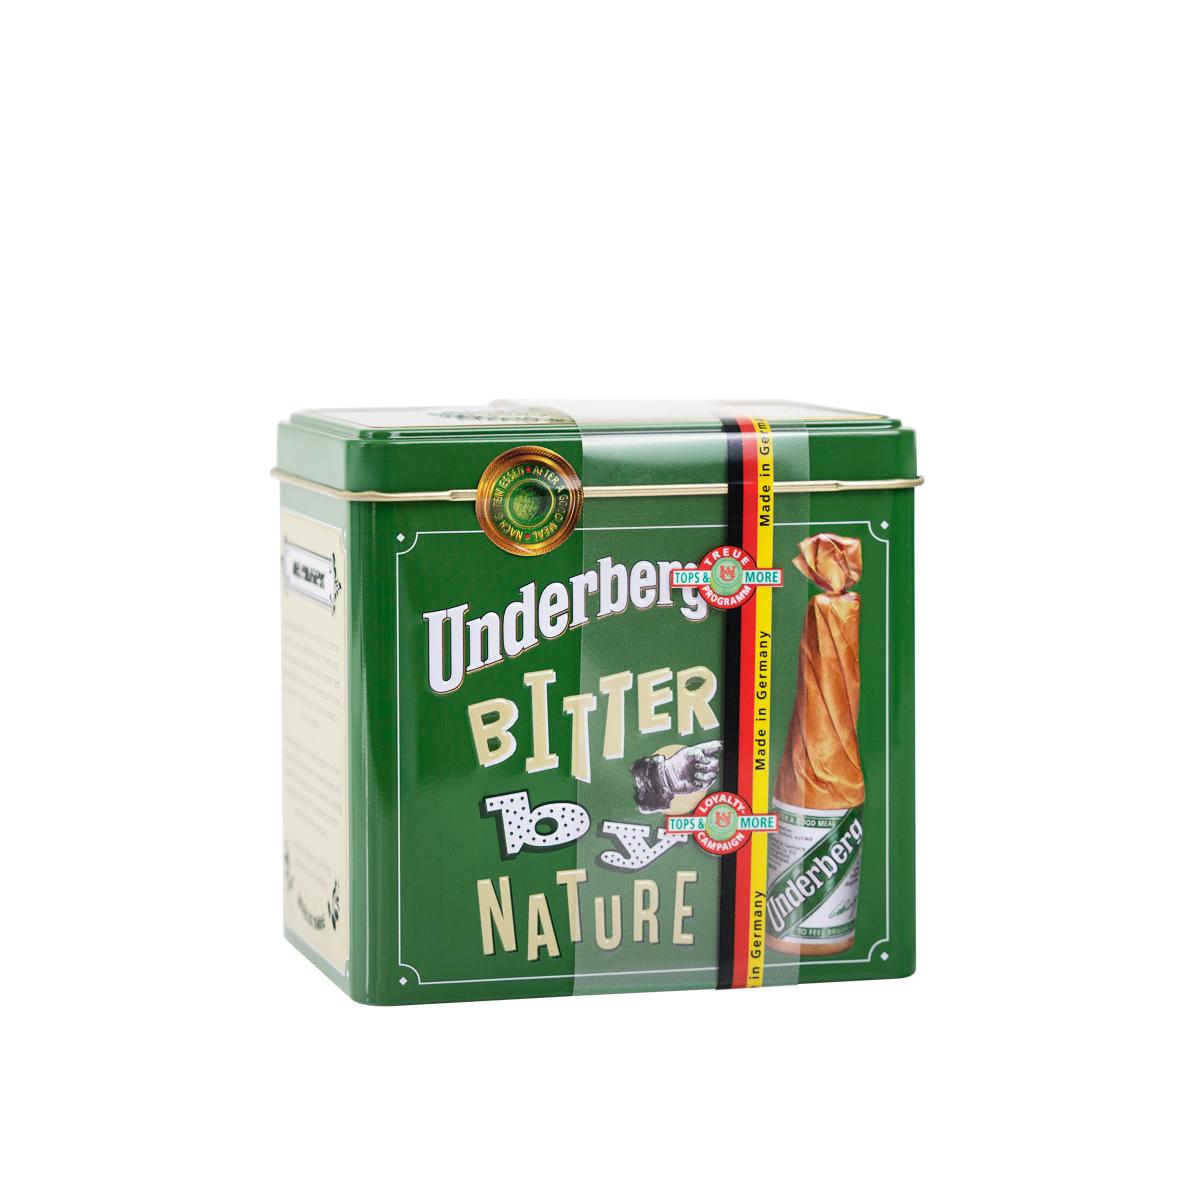 Primary image of 2020 Collector Tin Primary image of 2020 Collector Tin UNDERBERG 2020 Collector Tin